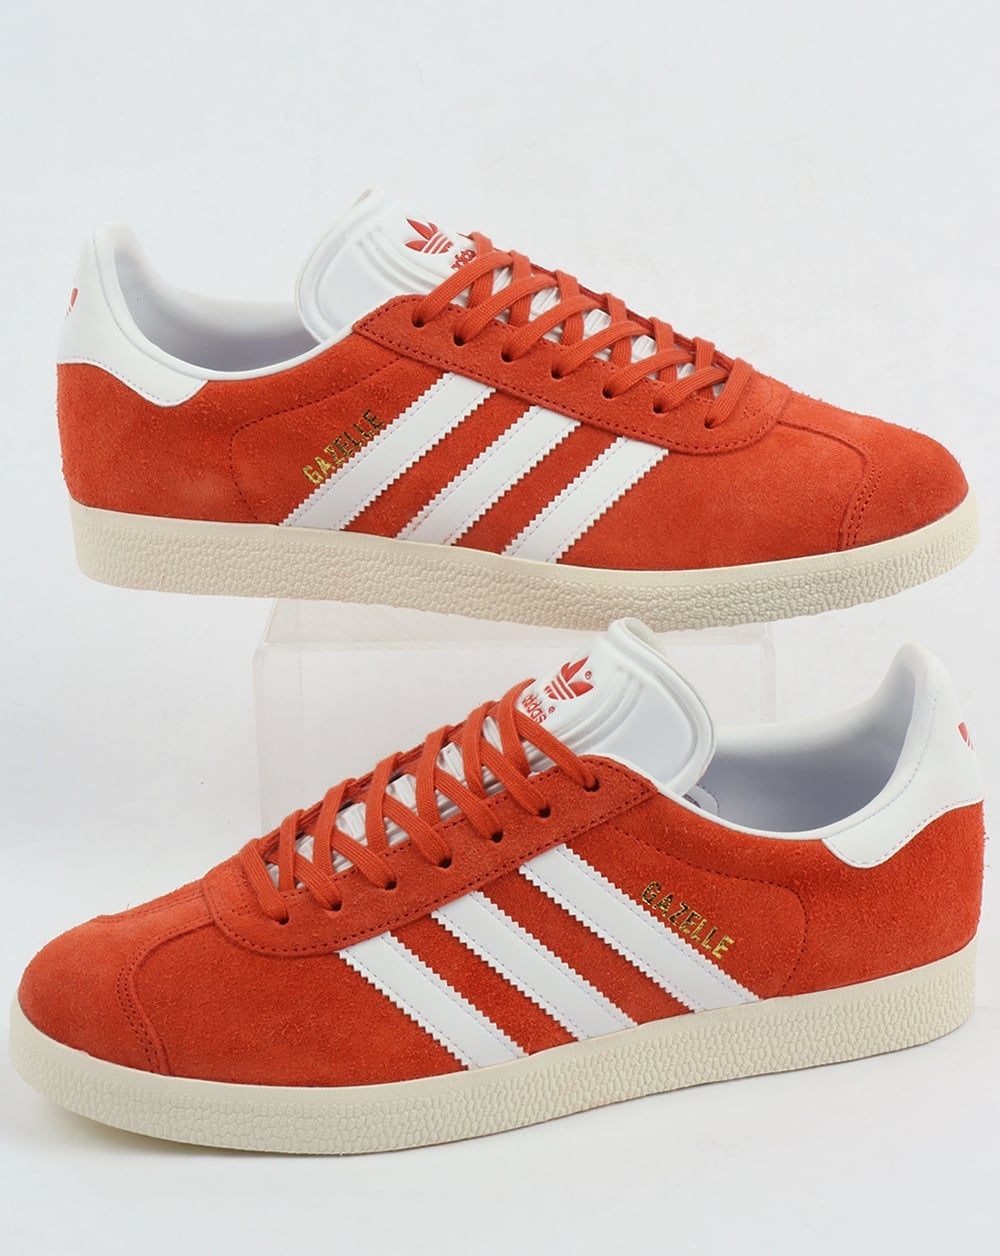 photos officielles 2fe85 6fd75 Adidas Gazelle Trainers Vintage Orange/White